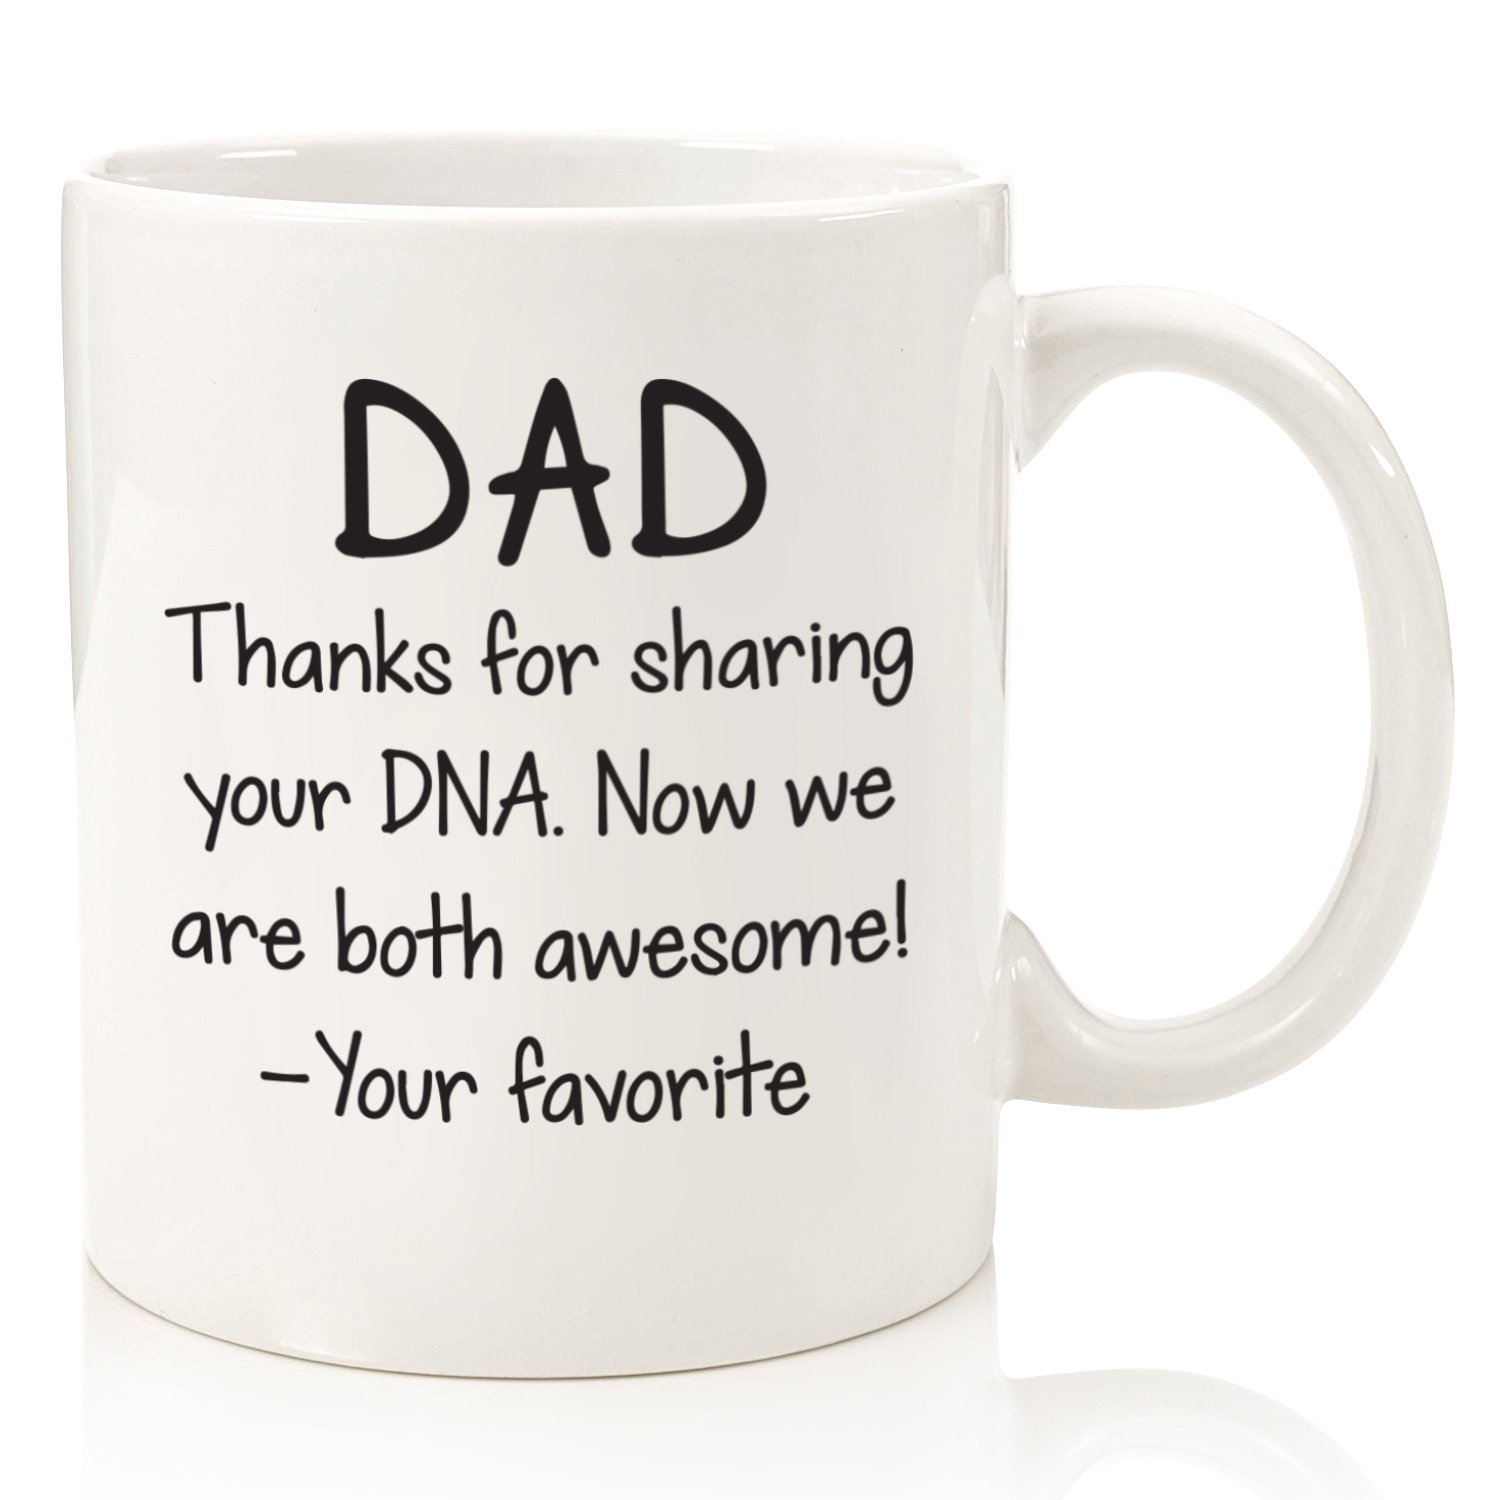 Dad Gifts - Funny Mug - Thanks For Sharing Your DNA - Best Dad Fathers Day Gifts - Unique Gag Gift For Him From Daughter, Son - Cool Birthday Present Idea For Men, Guys - Fun Novelty Coffee Cup - 11oz by Wittsy Glassware and Gifts (Image #1)